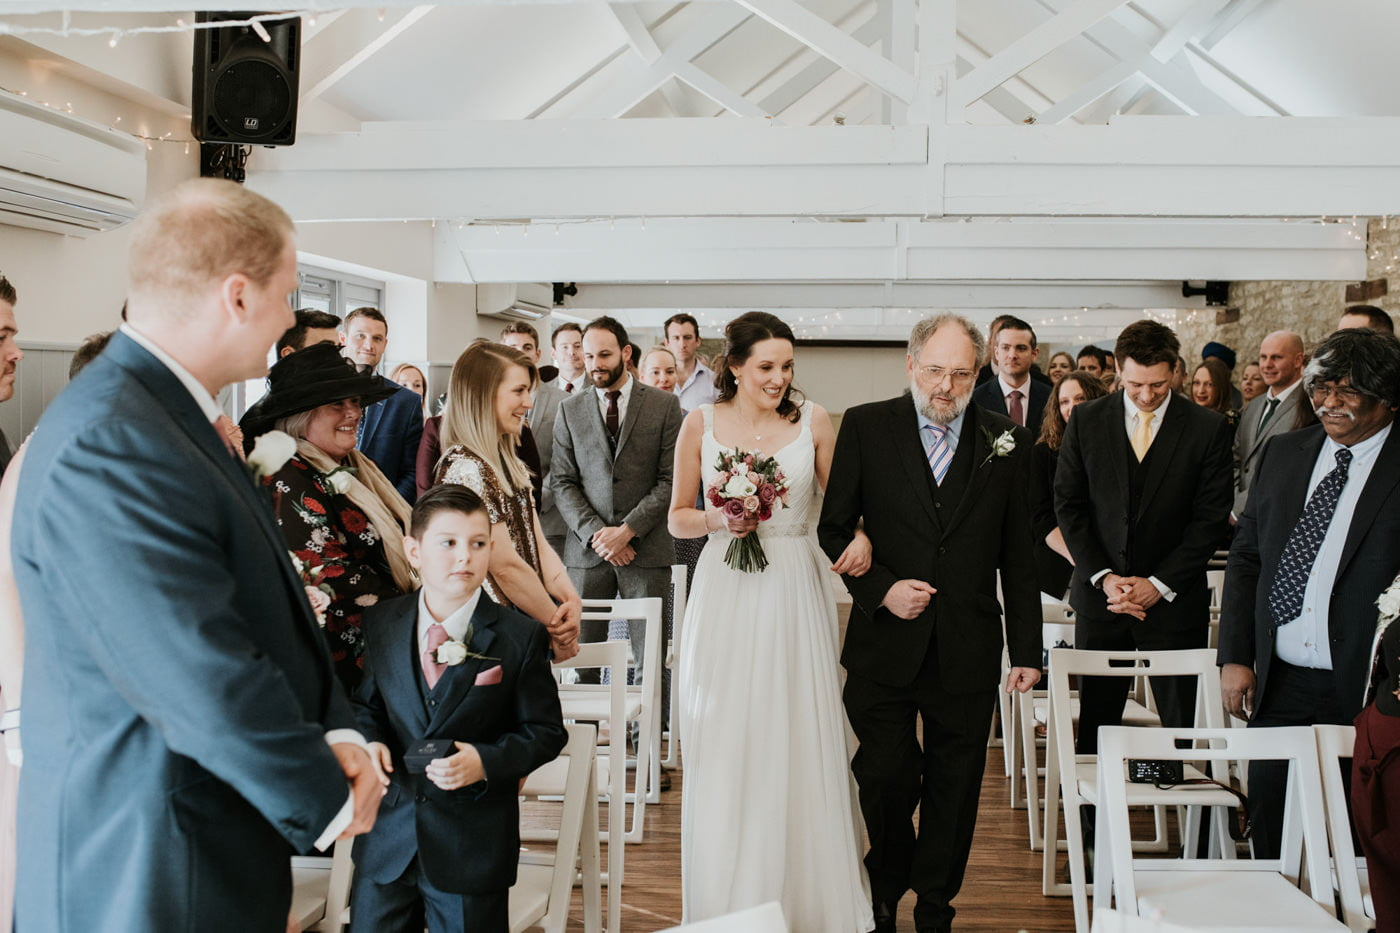 Ruth and Ben, Winkworth Farm, Wiltshire 40